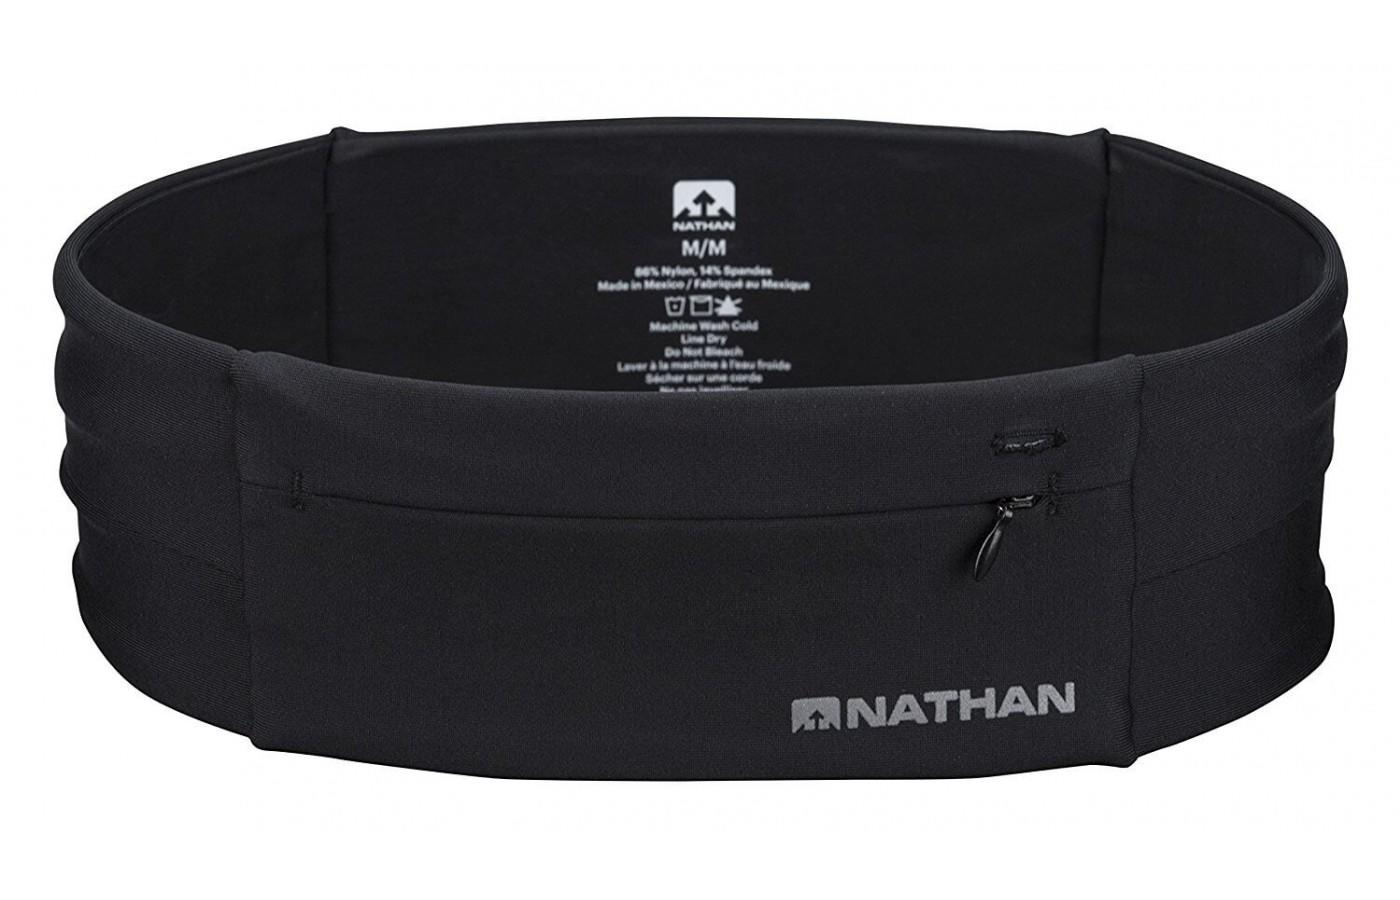 The Nathan Zipster Belt is made of stretchy fabric